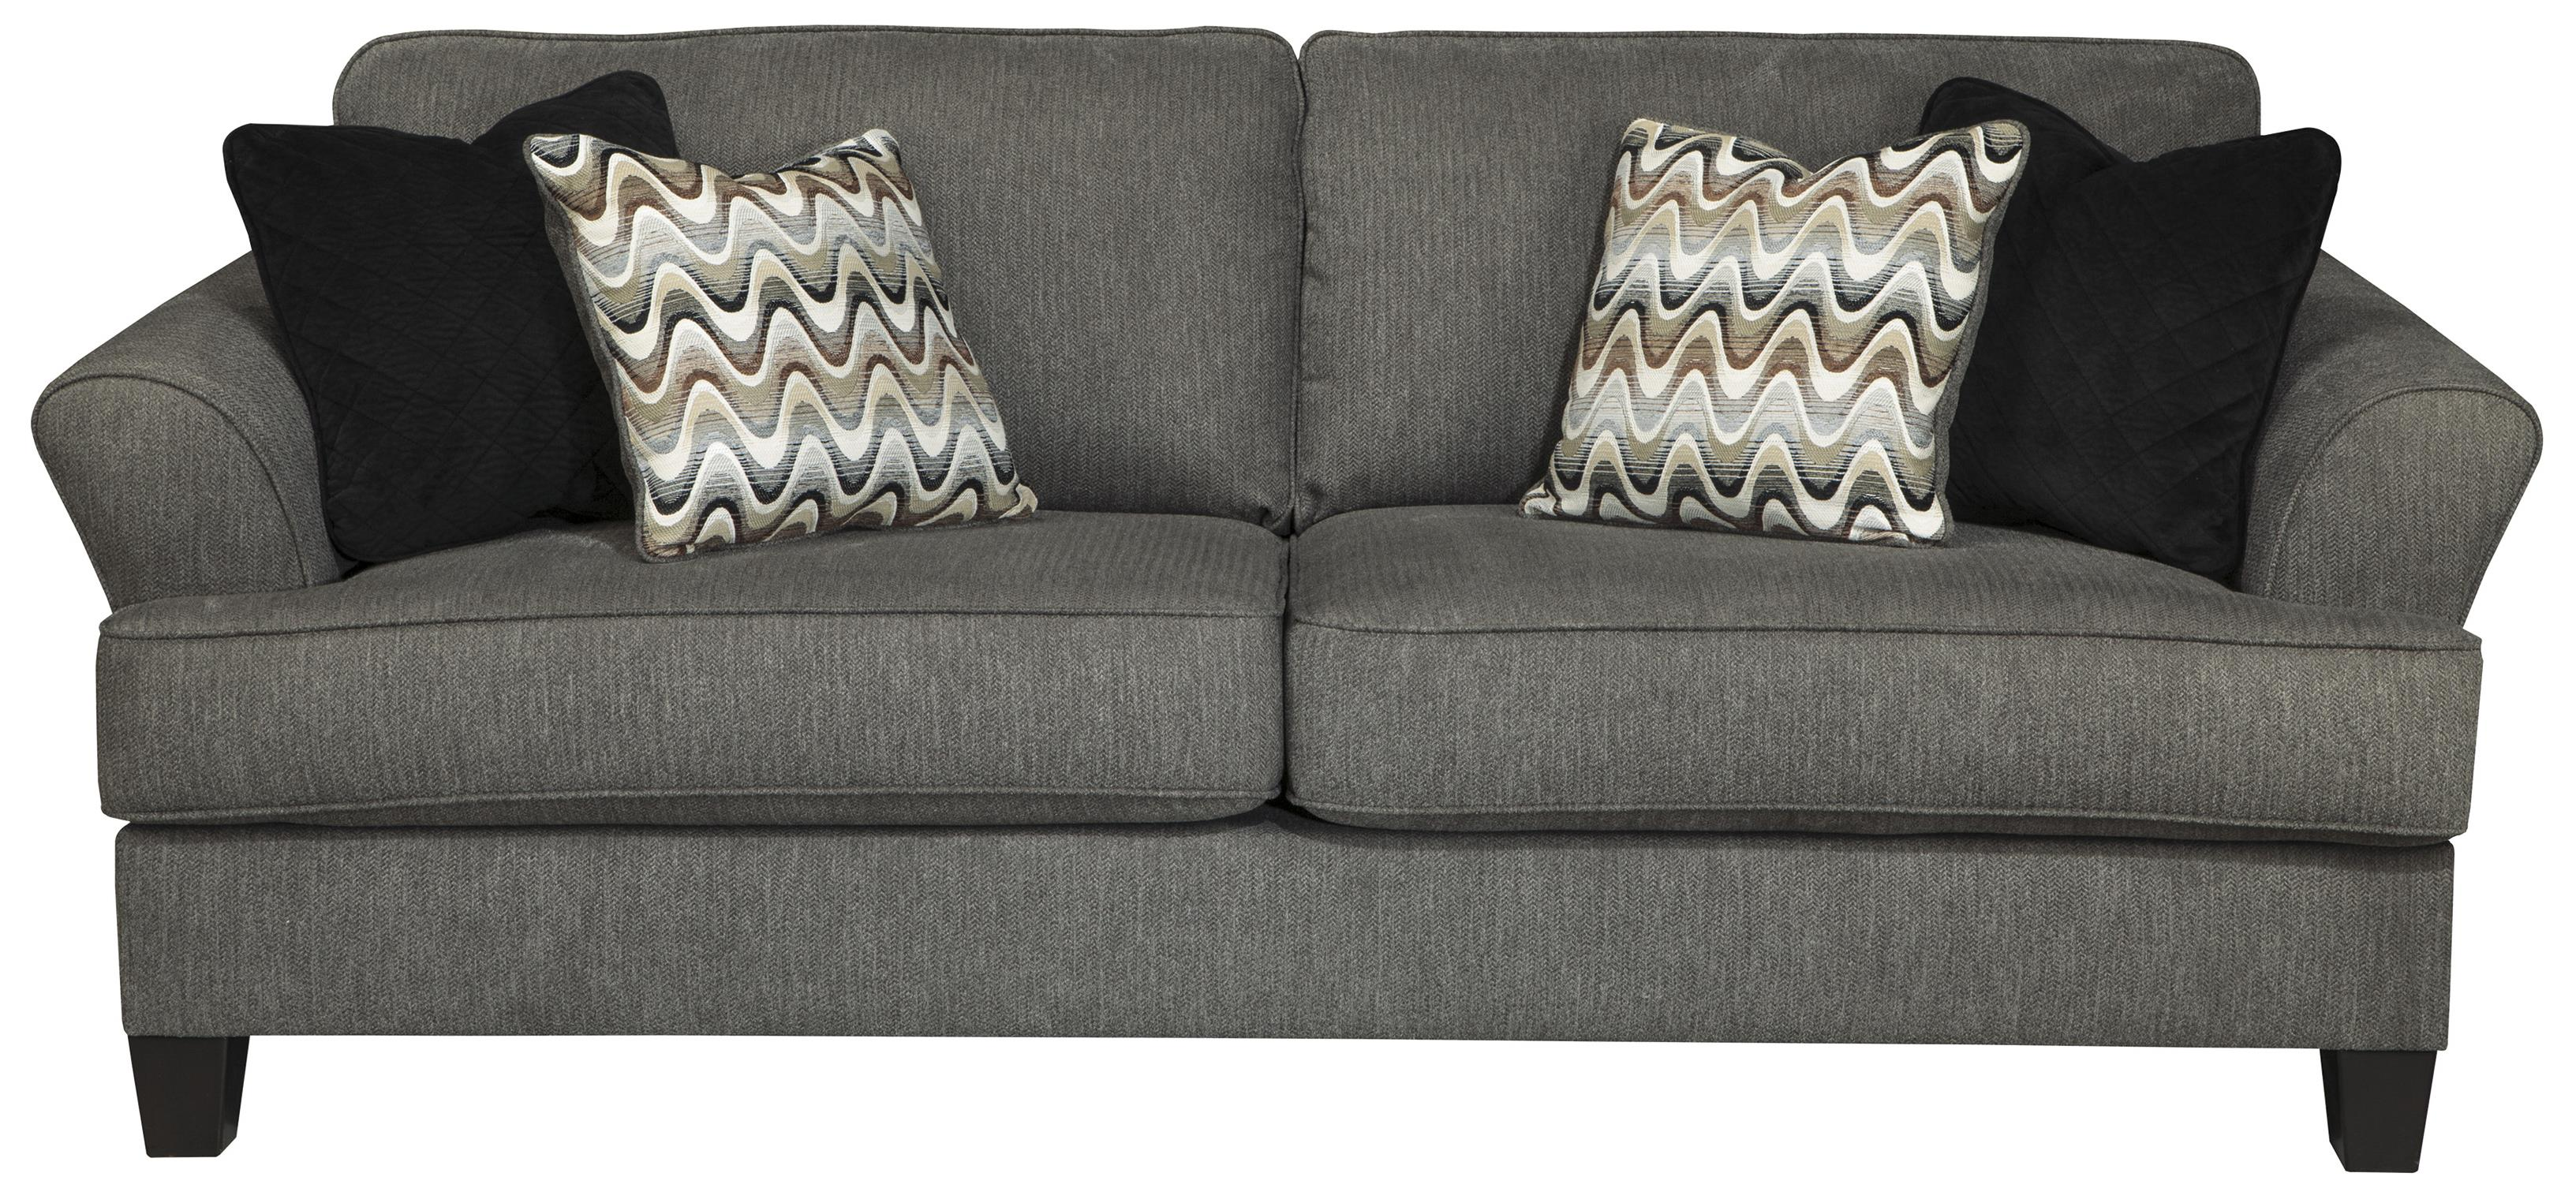 Benchcraft Gayler Sofa - Item Number: 4120138